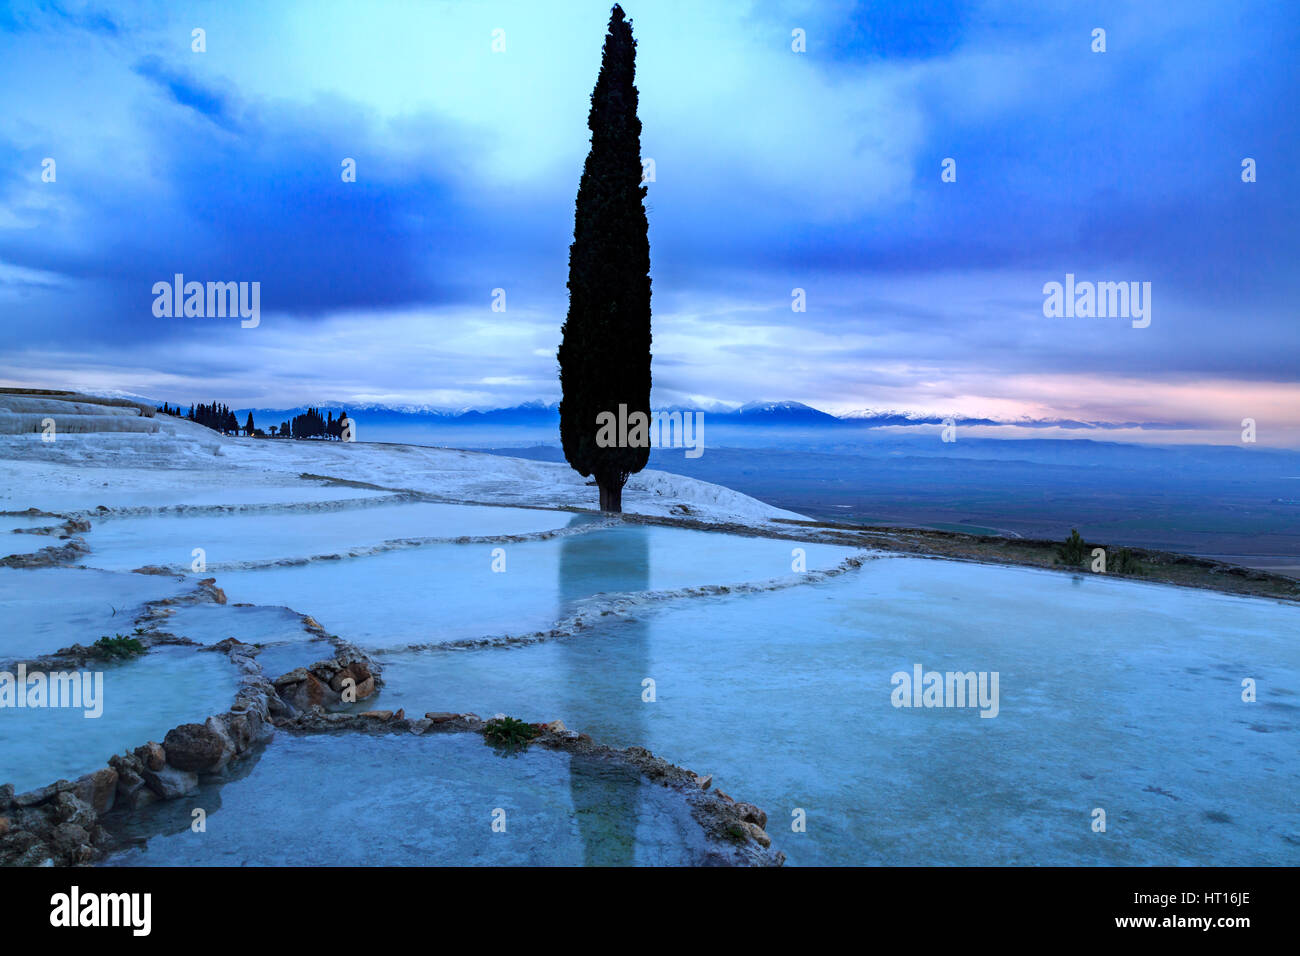 Tall pine tree reflection in Pamukkale travertines - Stock Image